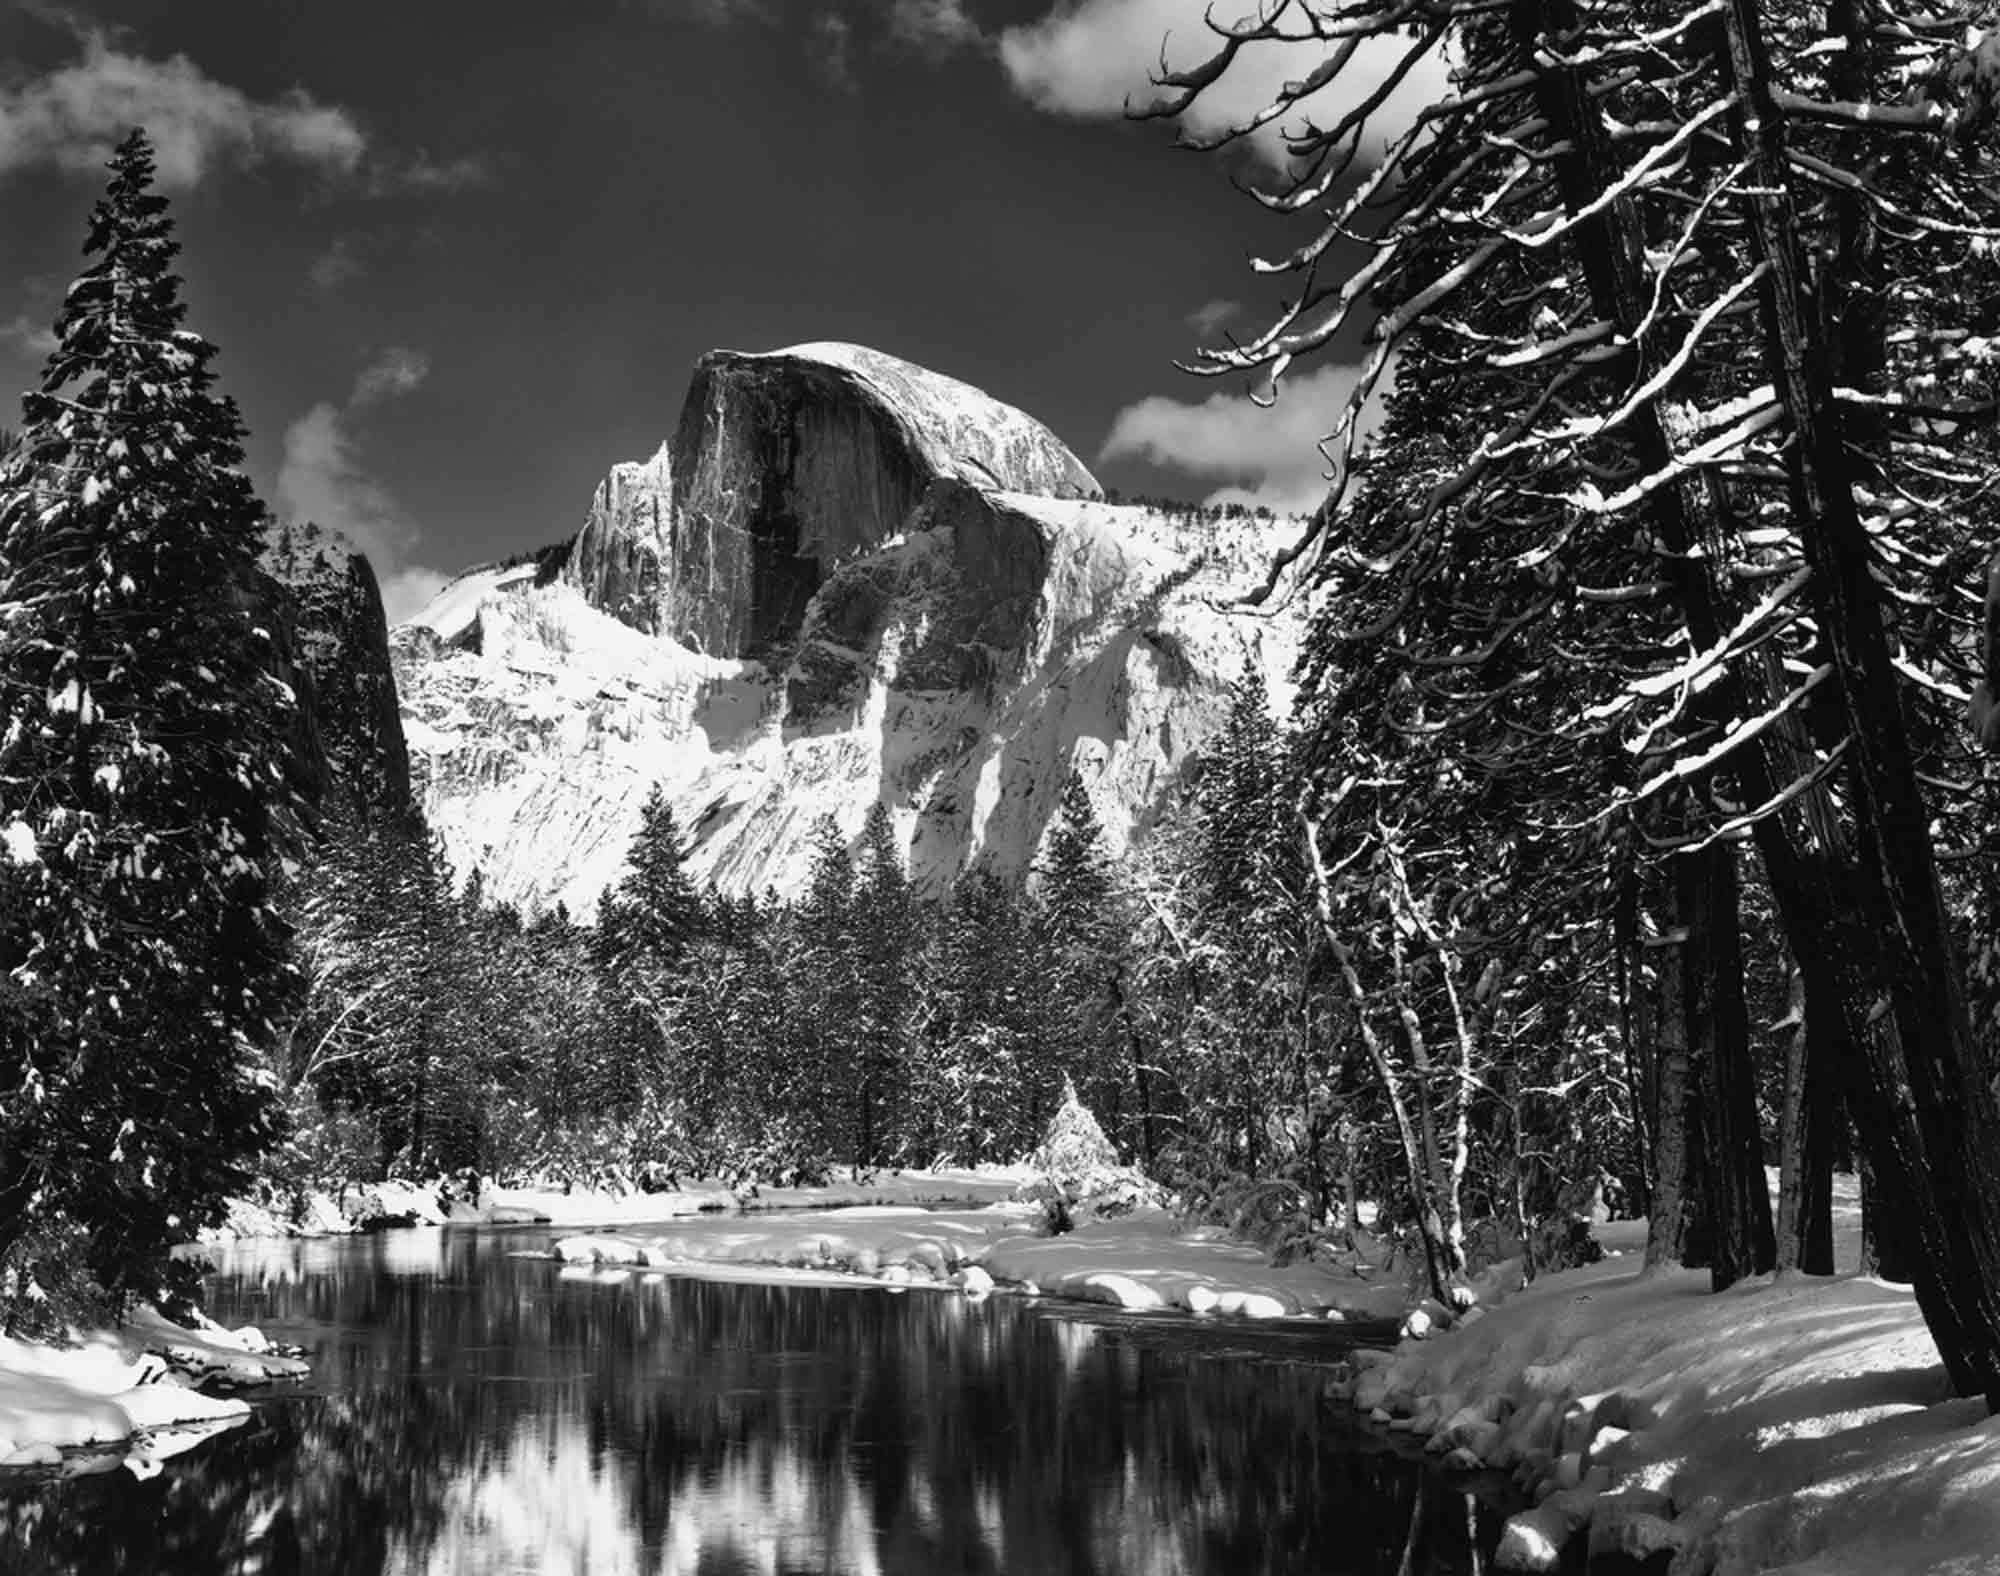 ansel-adams-Half-Dome-Merced-River-Winter